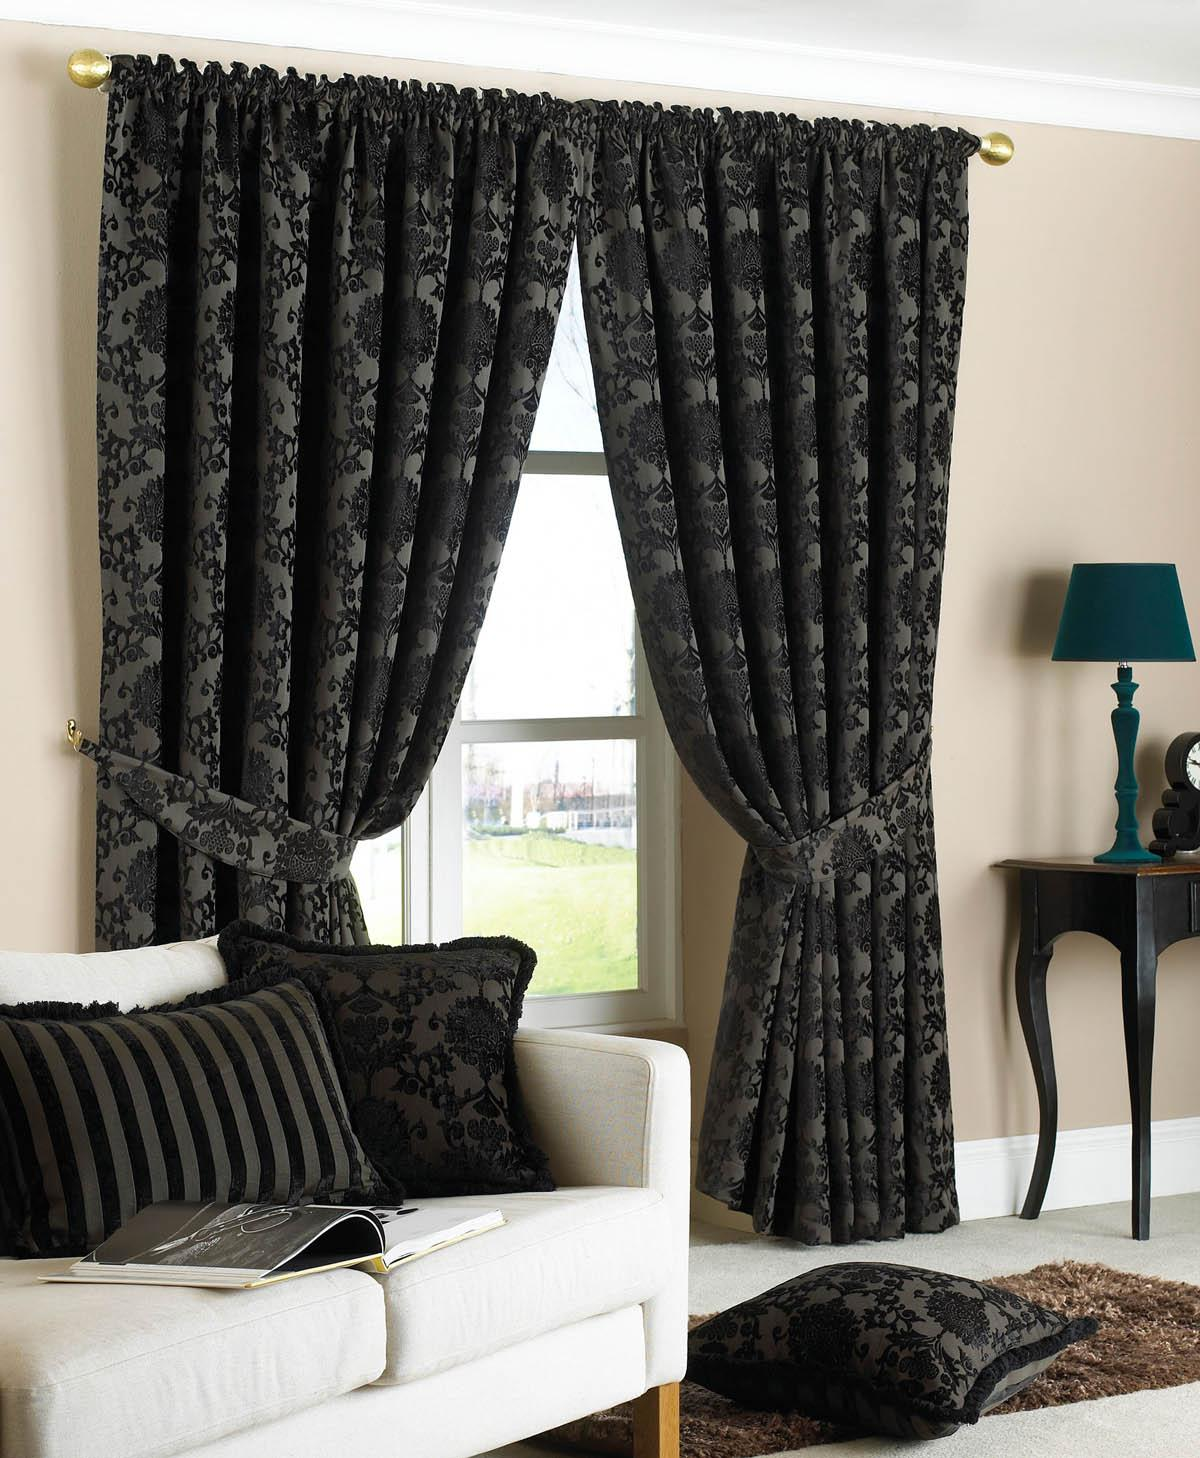 Black Hanover Ready Made Curtains